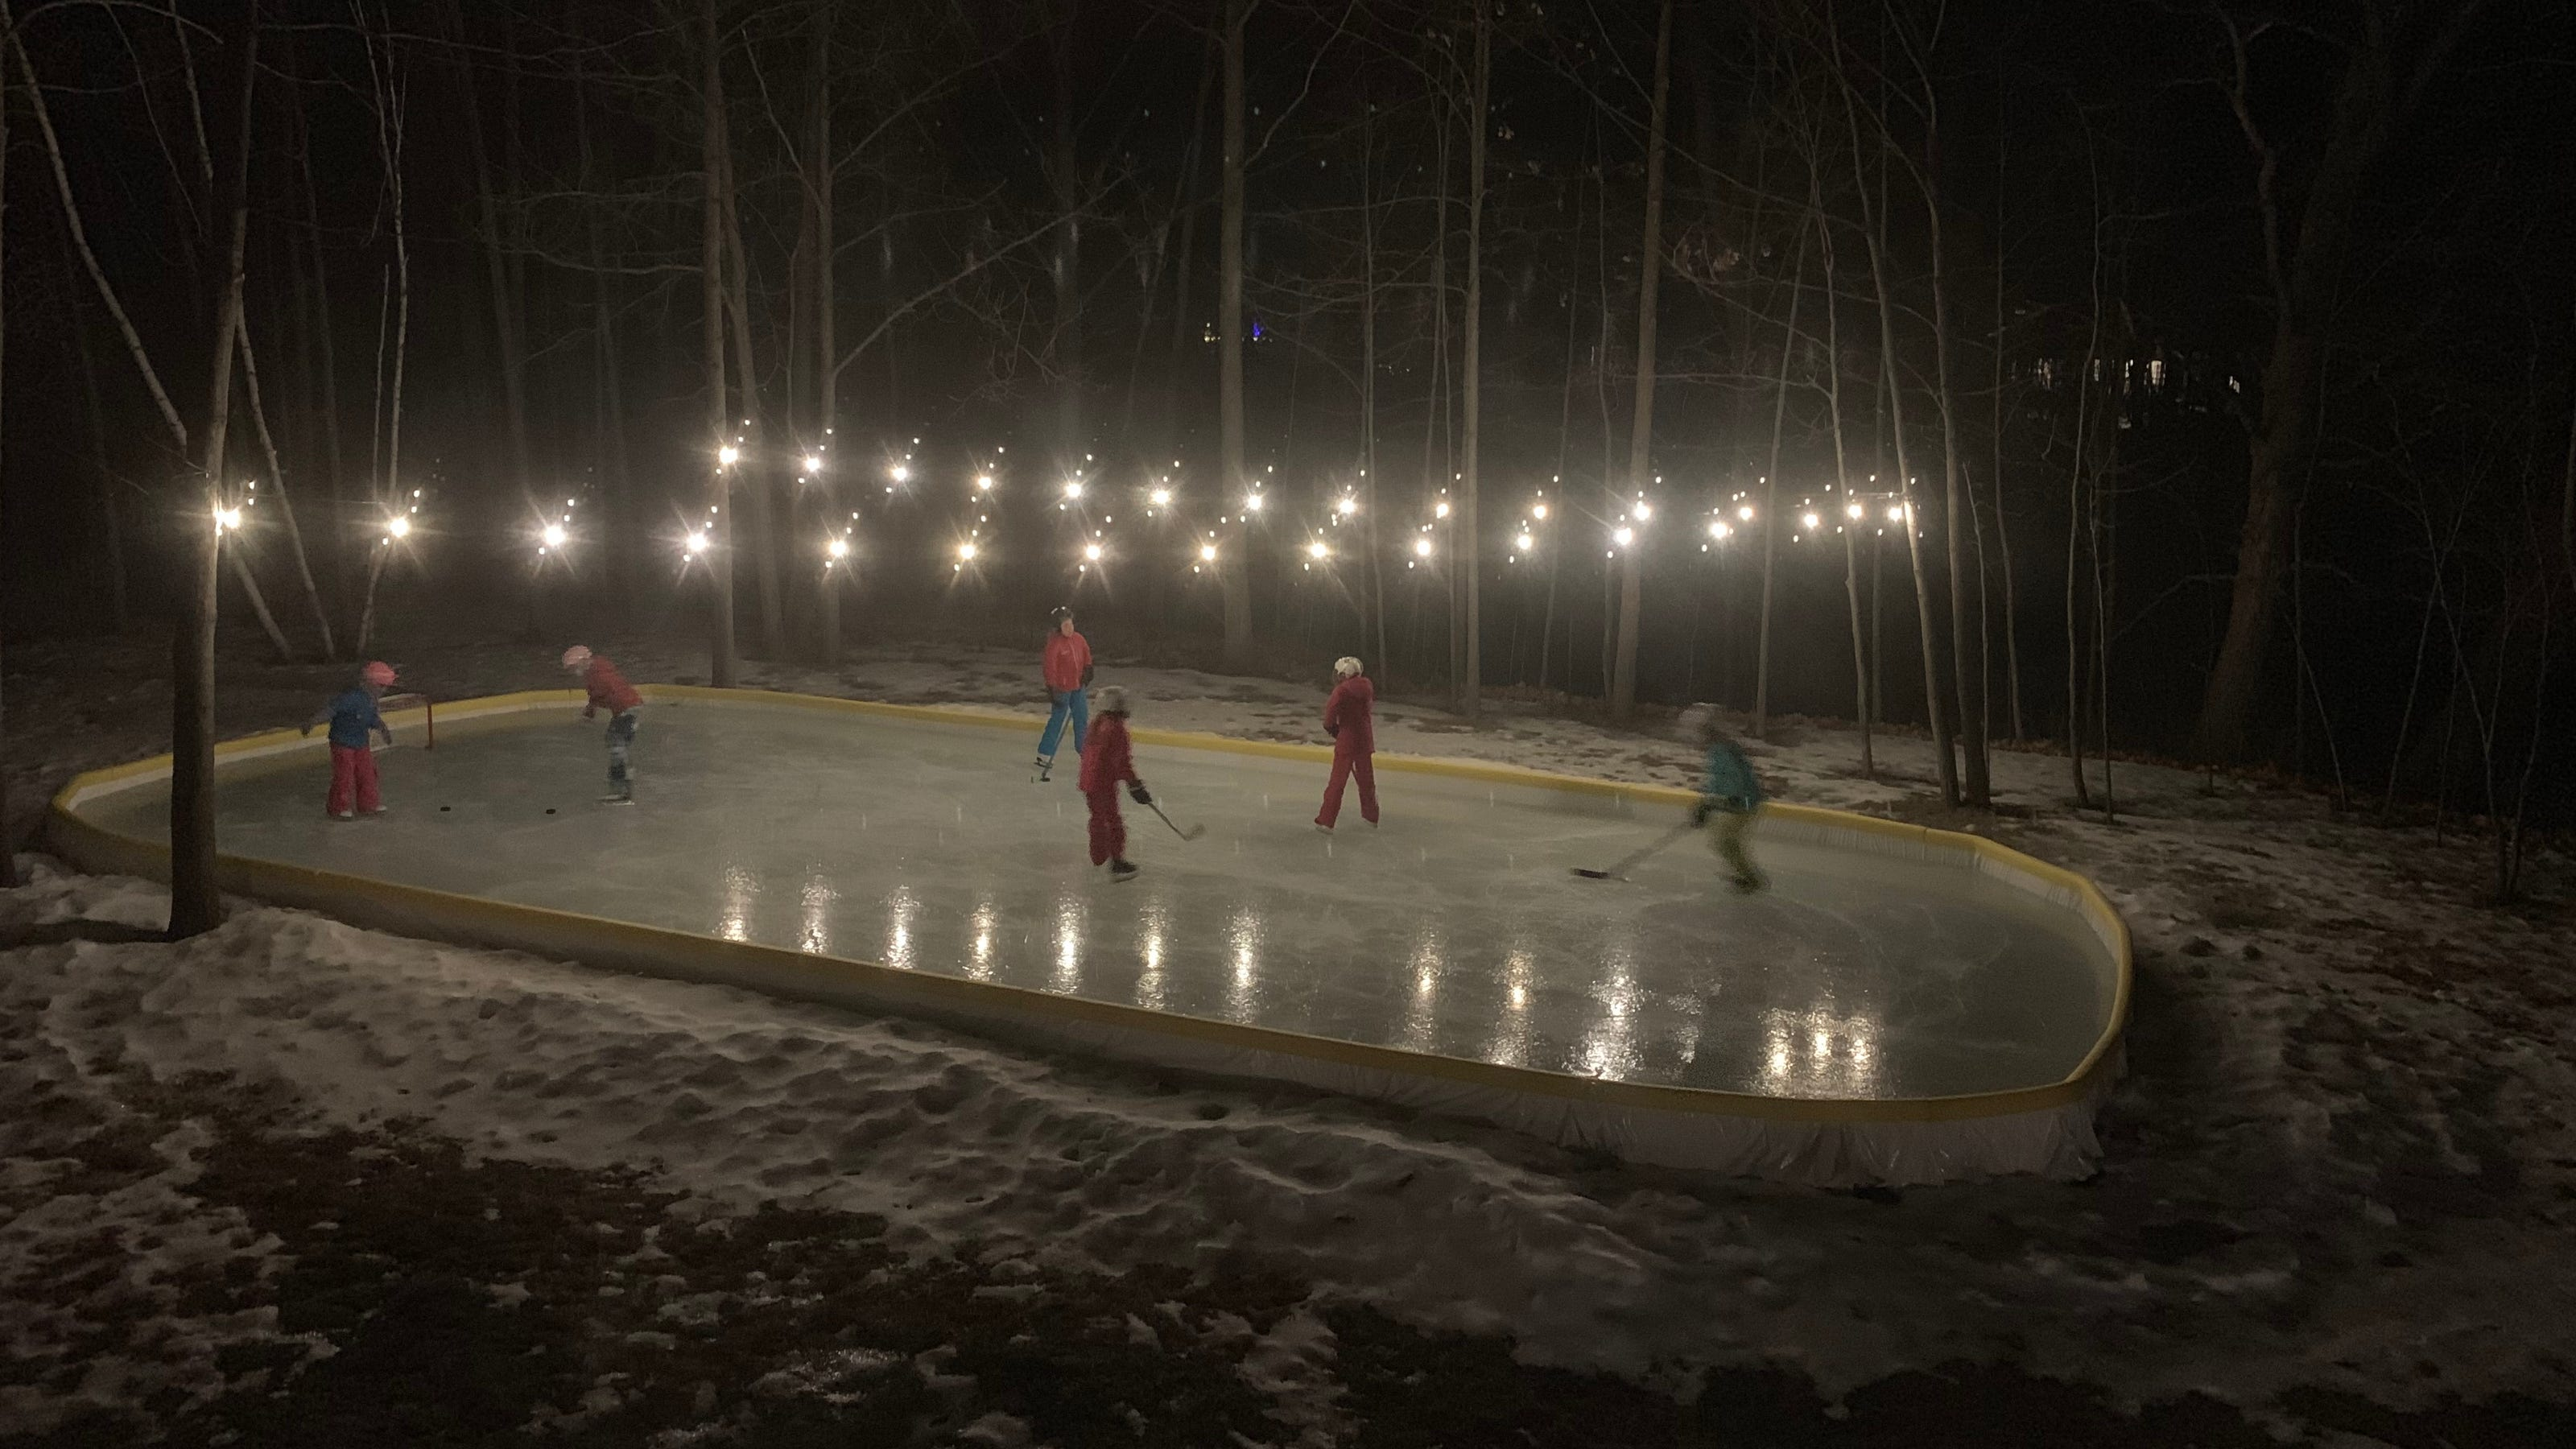 39 HQ Pictures How To Make A Hockey Rink In Backyard ...